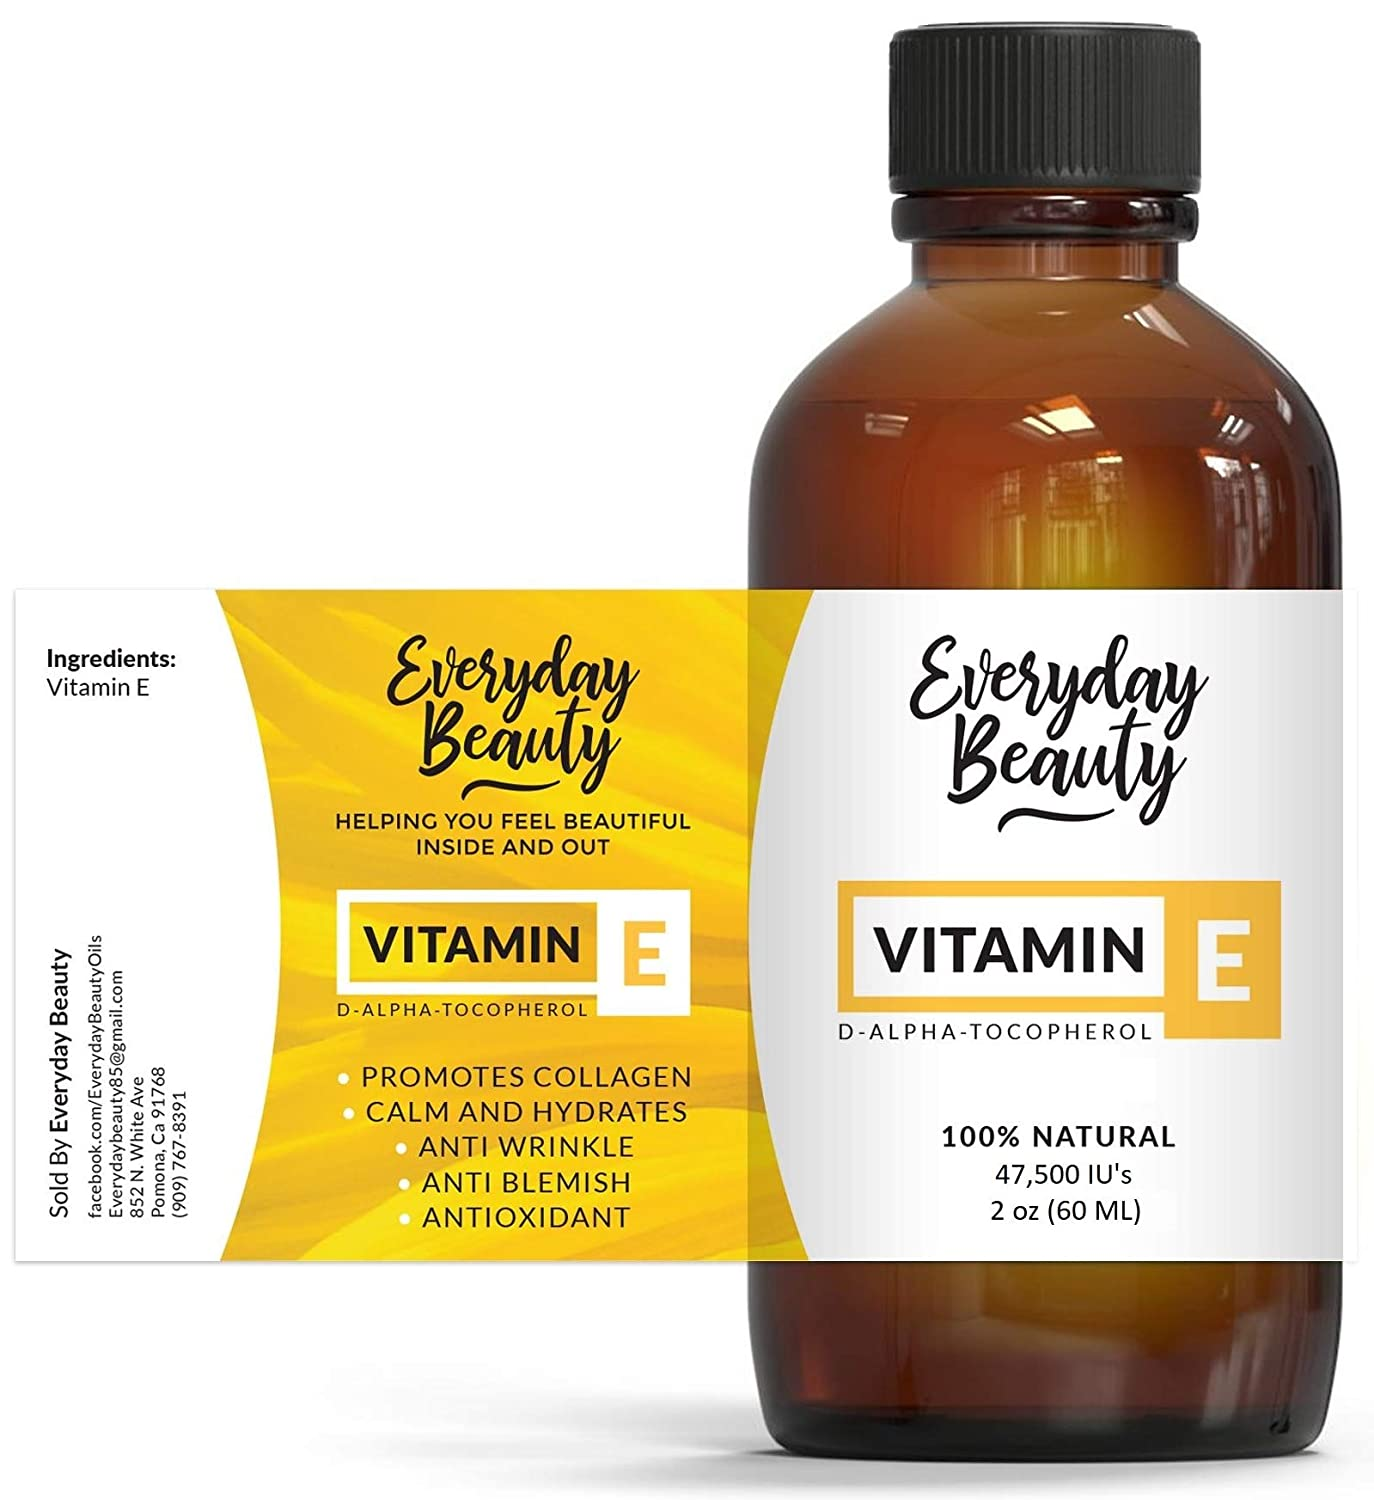 Vitamin E Oil - 100% Pure & Natural 2oz 47,500 IU - Unscented, Not a Blend, Derived From Wheat Germ - Reduce Wrinkles, Anti Aging, Lighten Dark Spots and After Surgery Scars